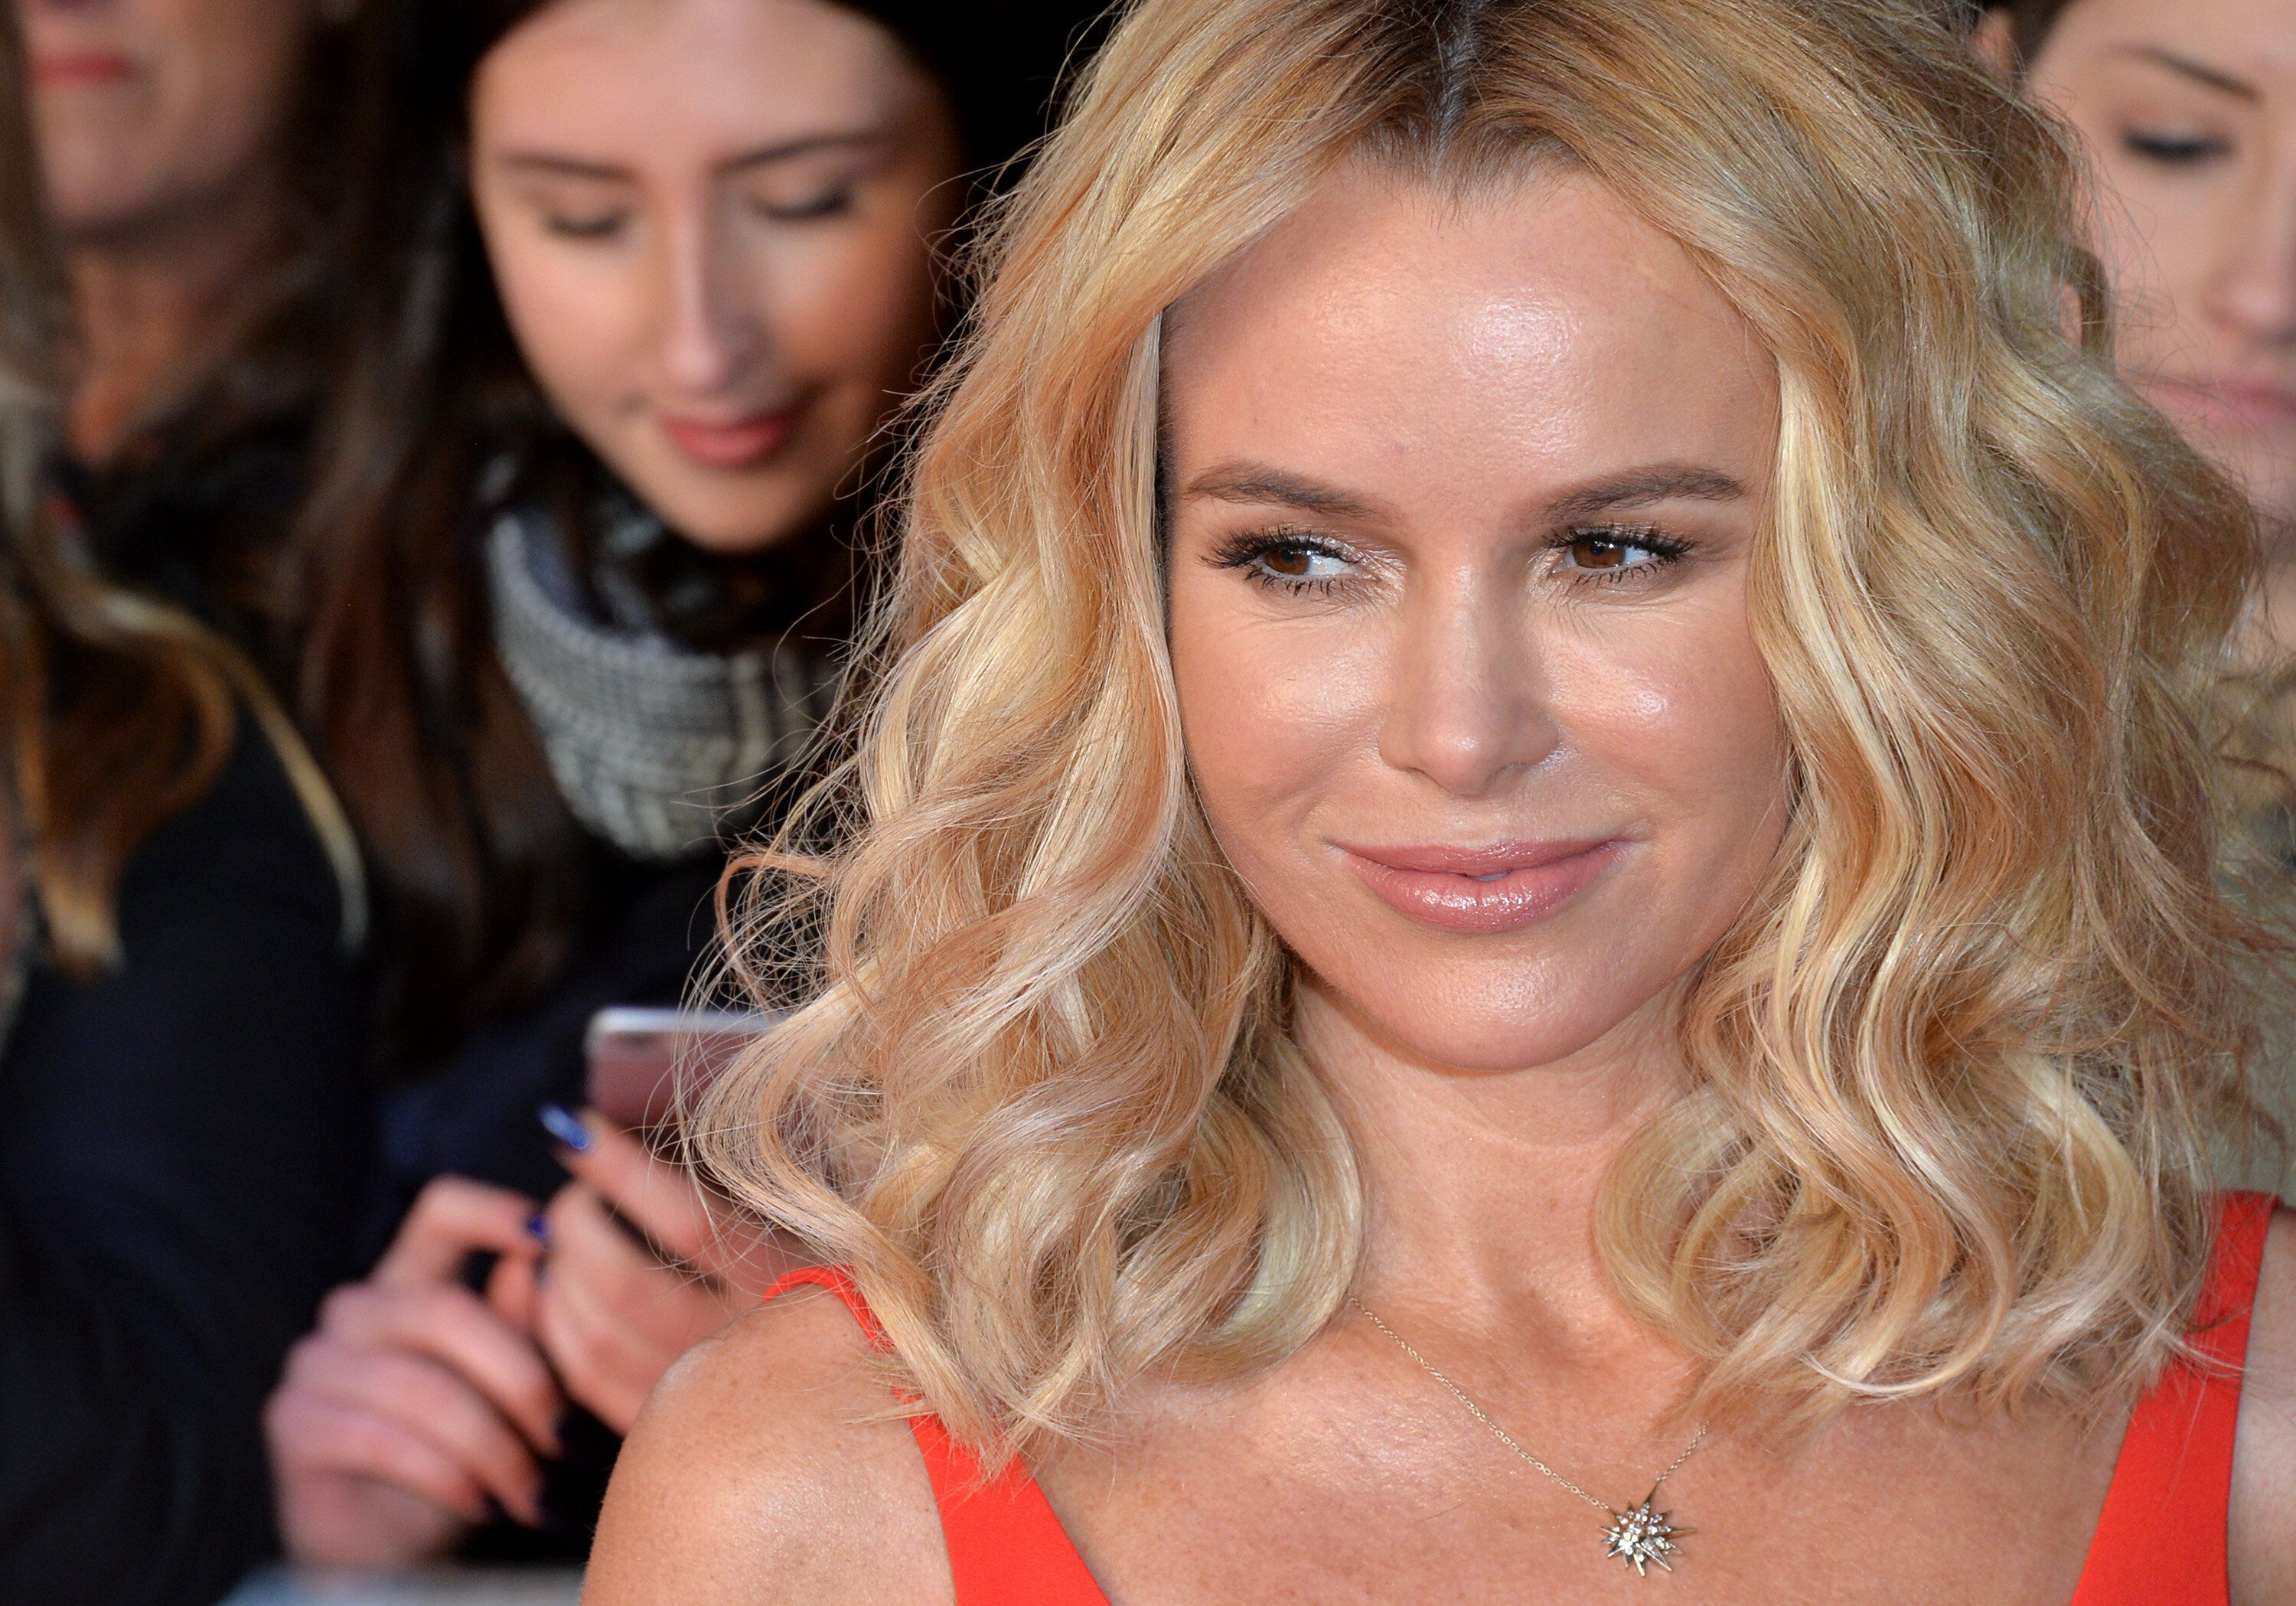 LONDON, ENGLAND - JANUARY 22:  Amanda Holden attends the Britain's Got Talent Auditions on January 22, 2016 in London, England.  (Photo by Anthony Harvey/Getty Images)